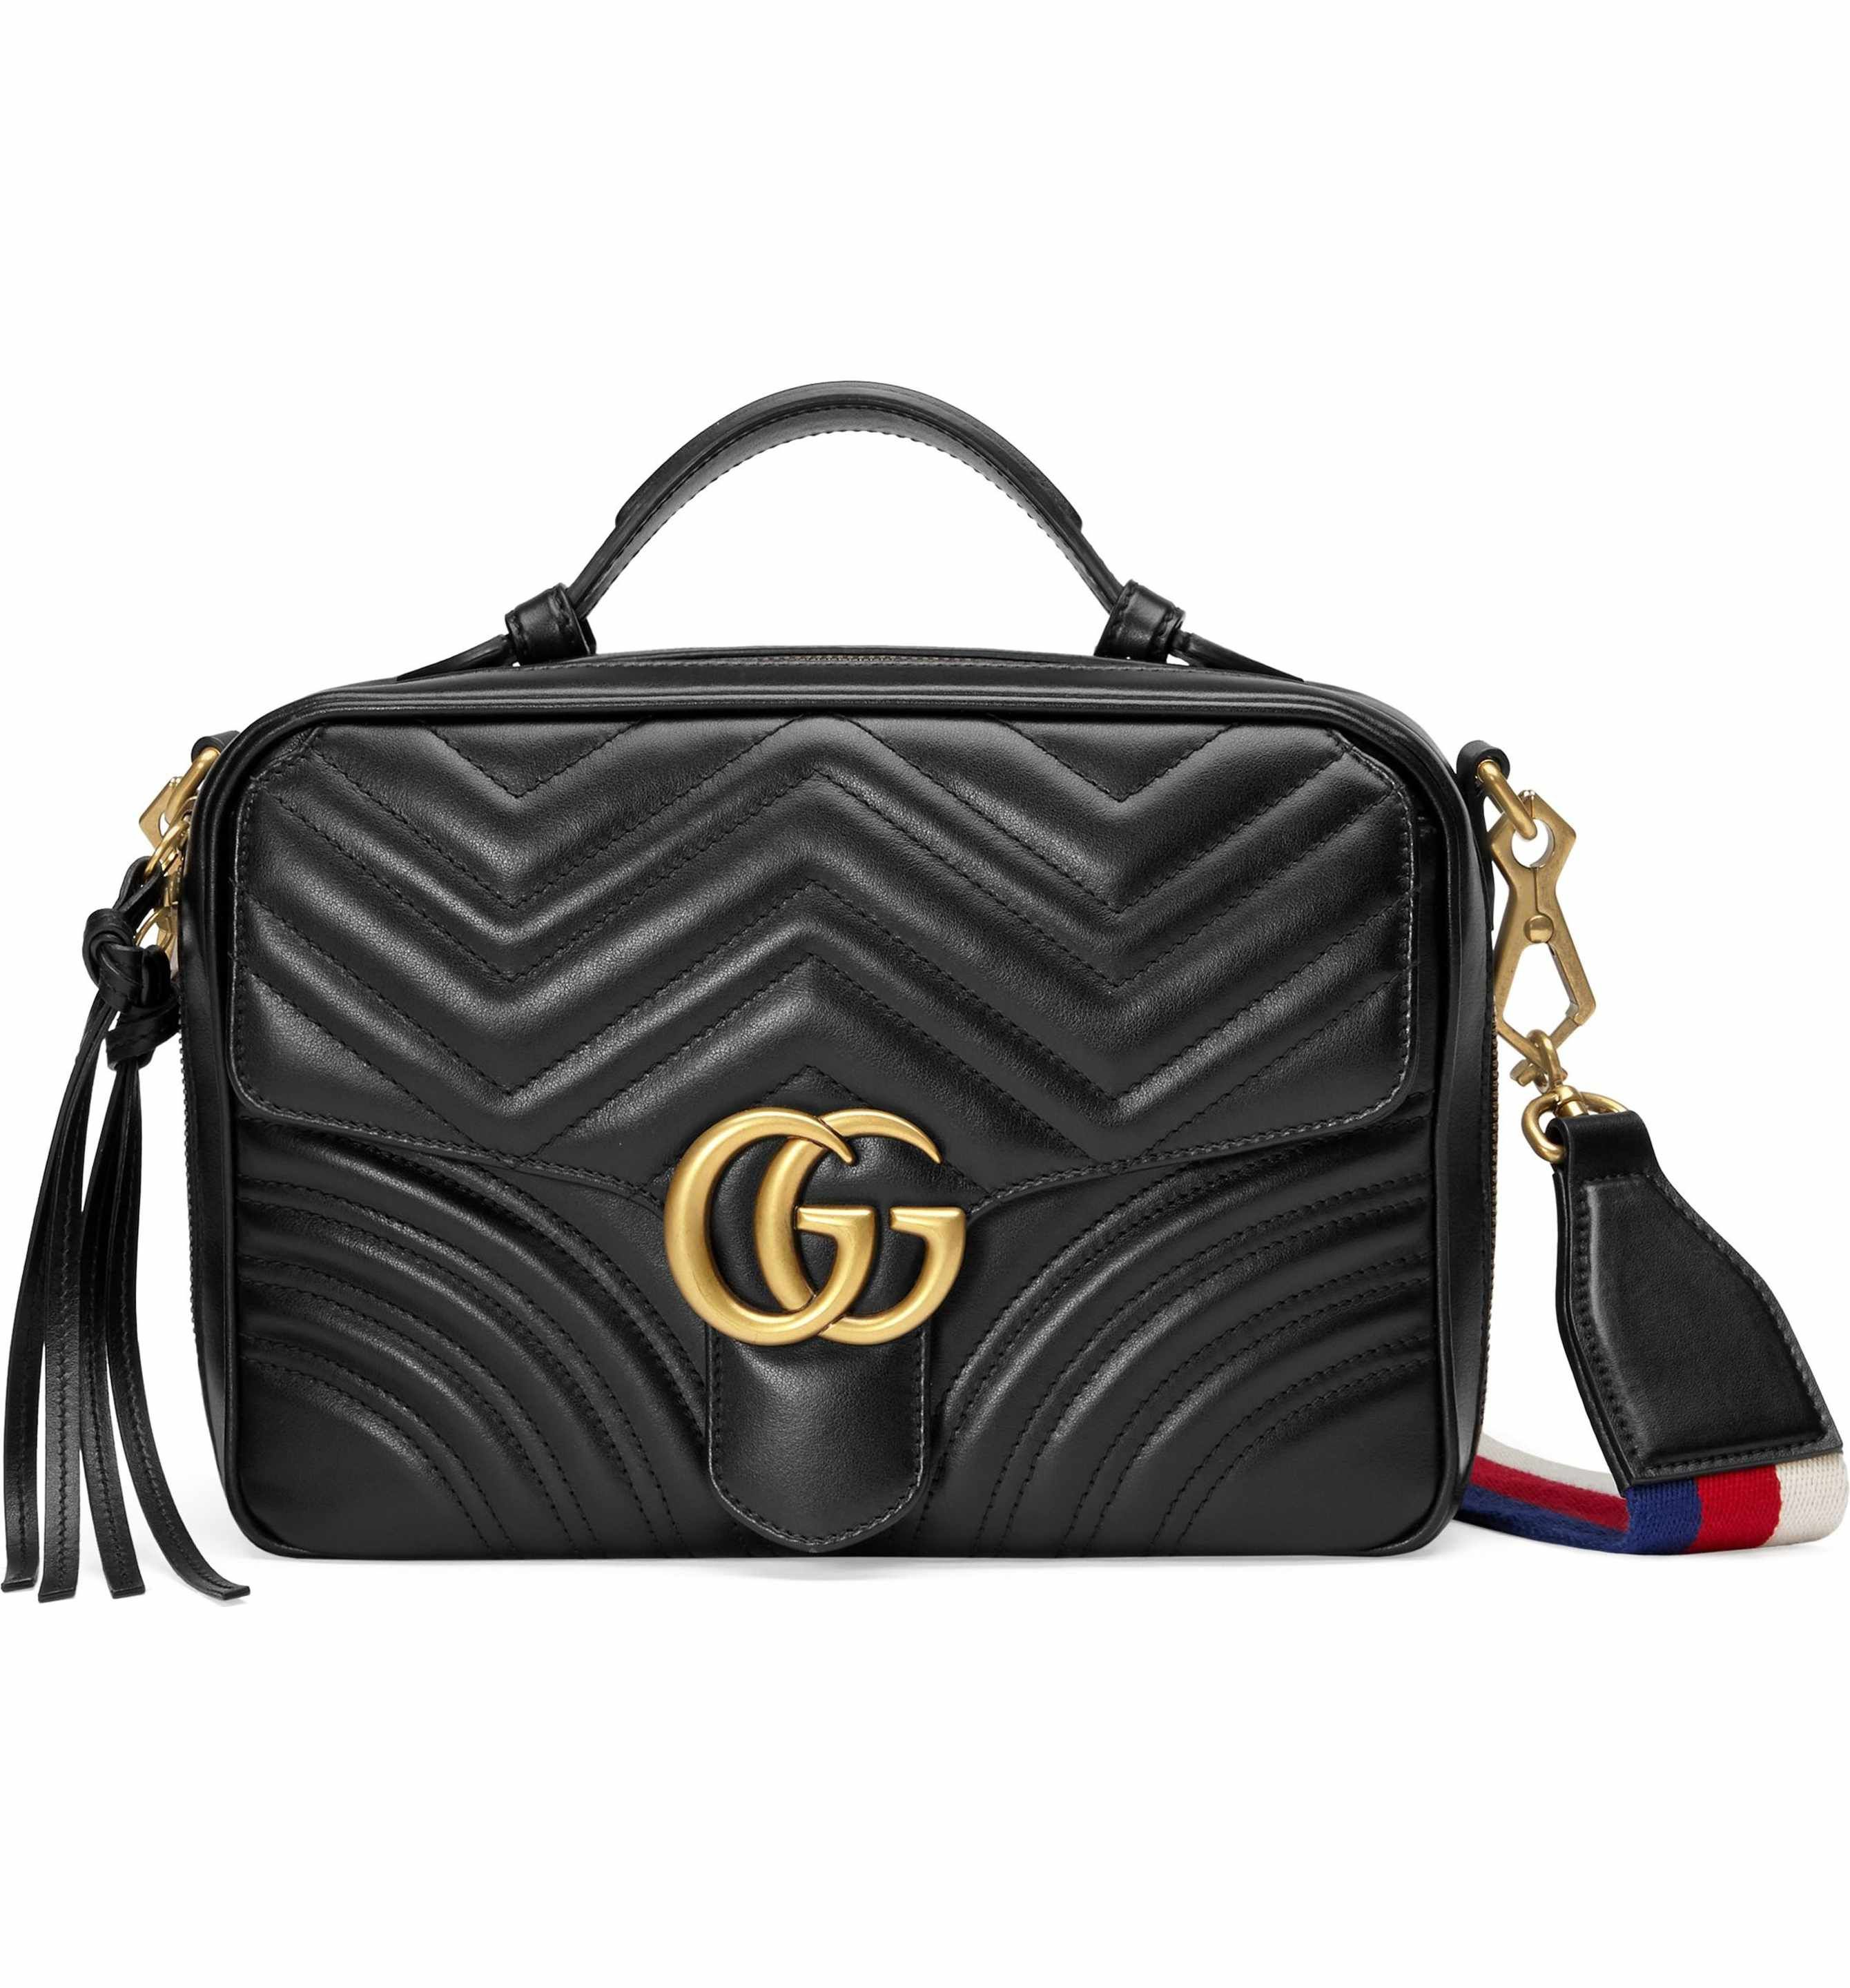 7d805bf224d Main Image - Gucci Small GG Marmont 2.0 Matelassé Leather Camera Bag with  Webbed Strap